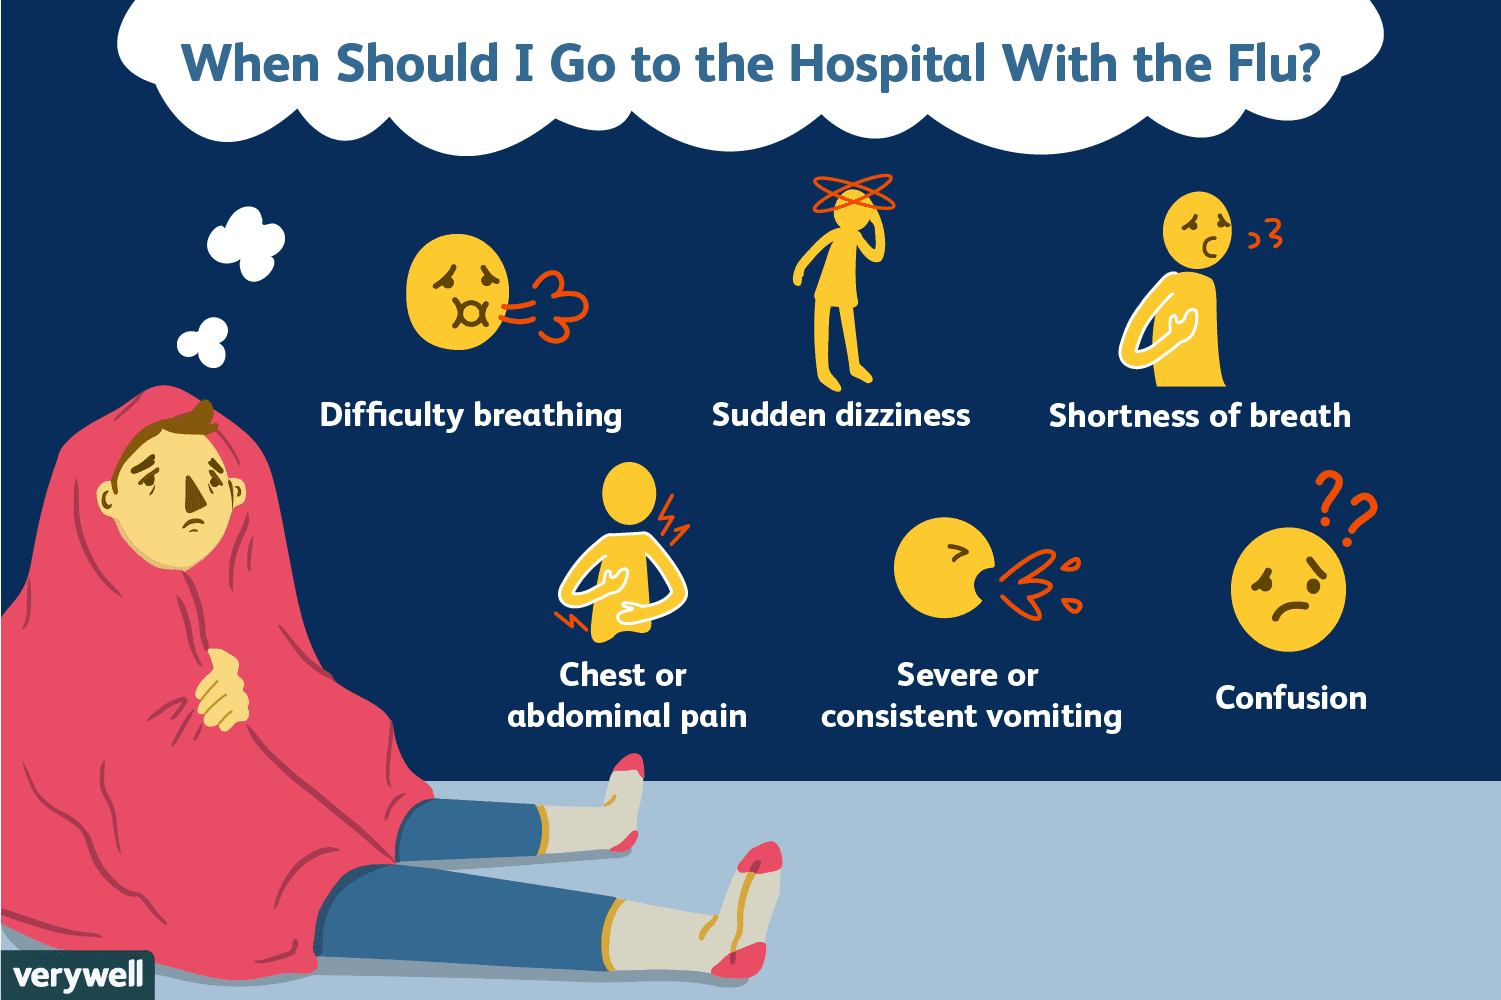 When Should You Go to the Hospital With the Flu?